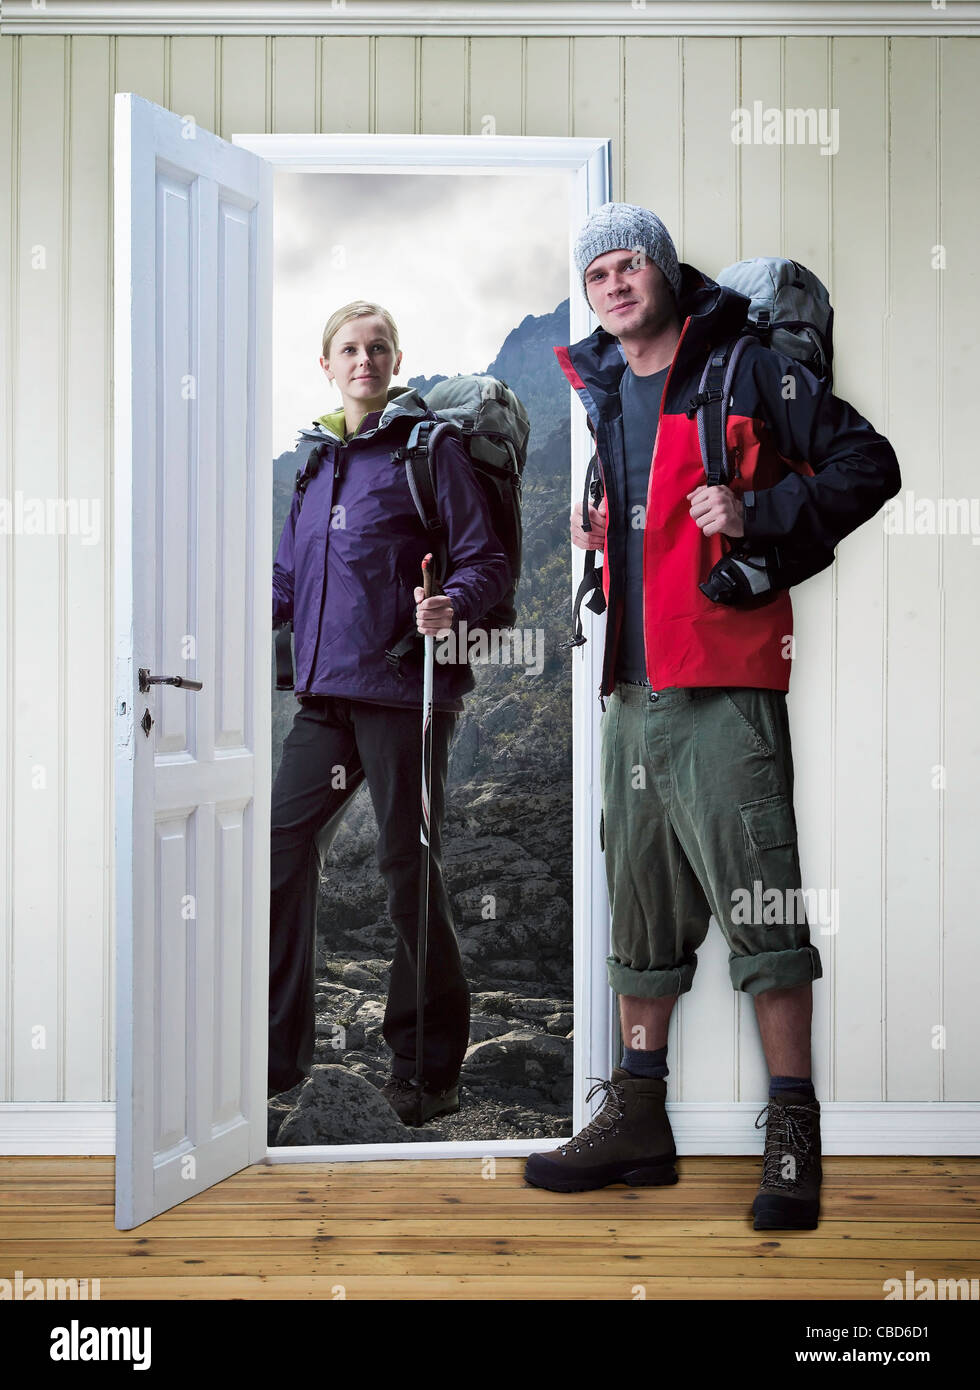 Hikers standing in new house - Stock Image